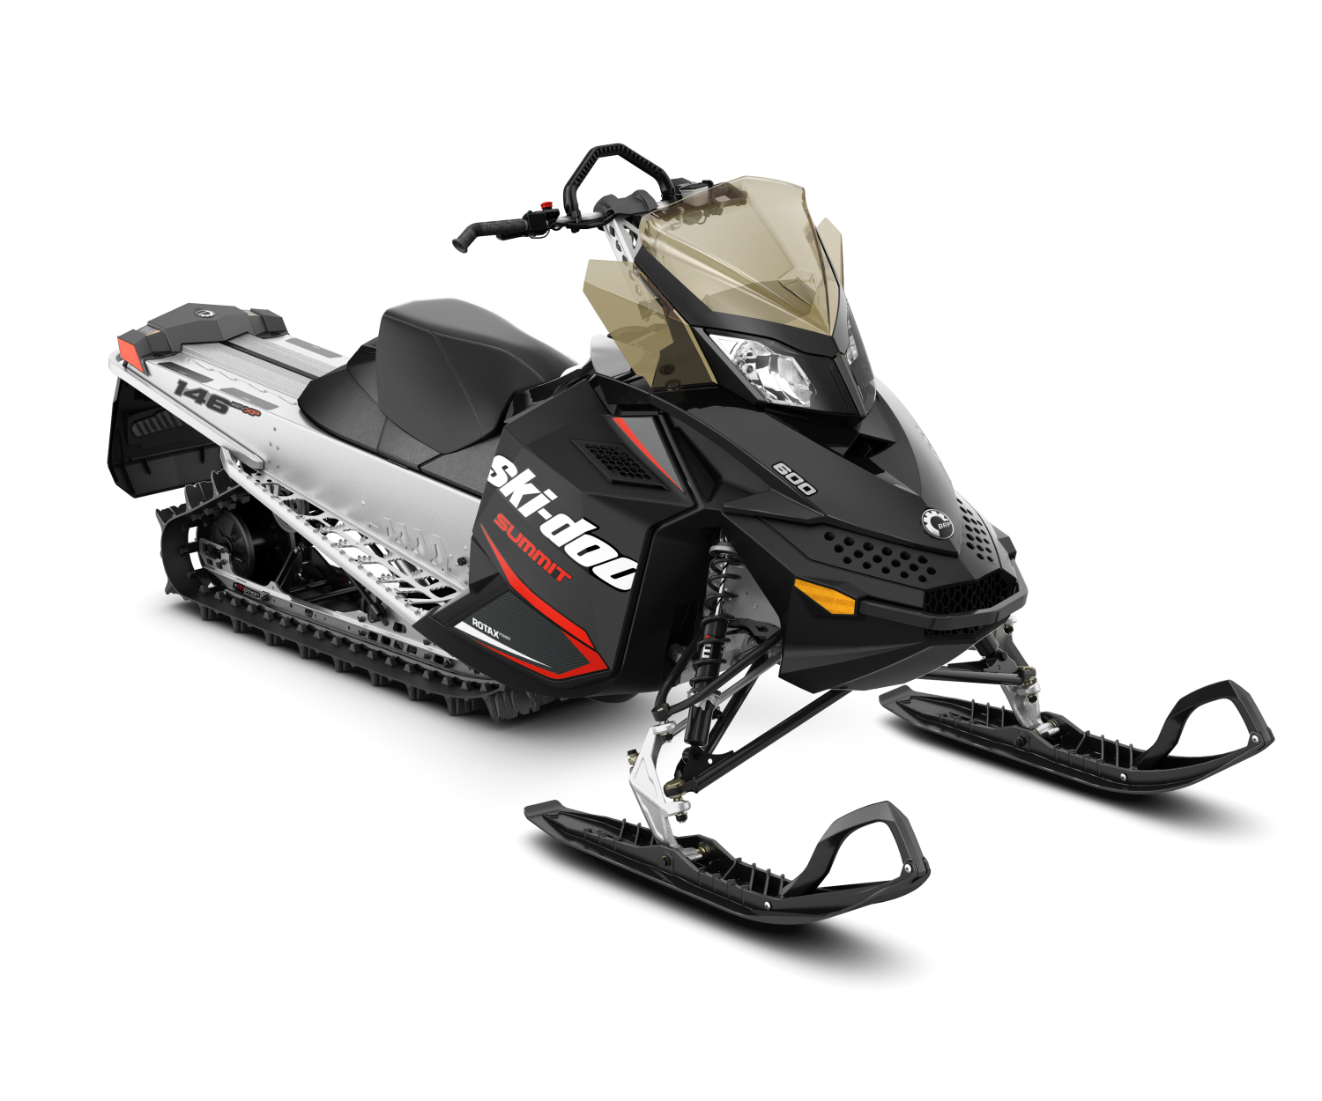 2018 Ski-Doo Summit Sport 600 Carb in Clinton Township, Michigan